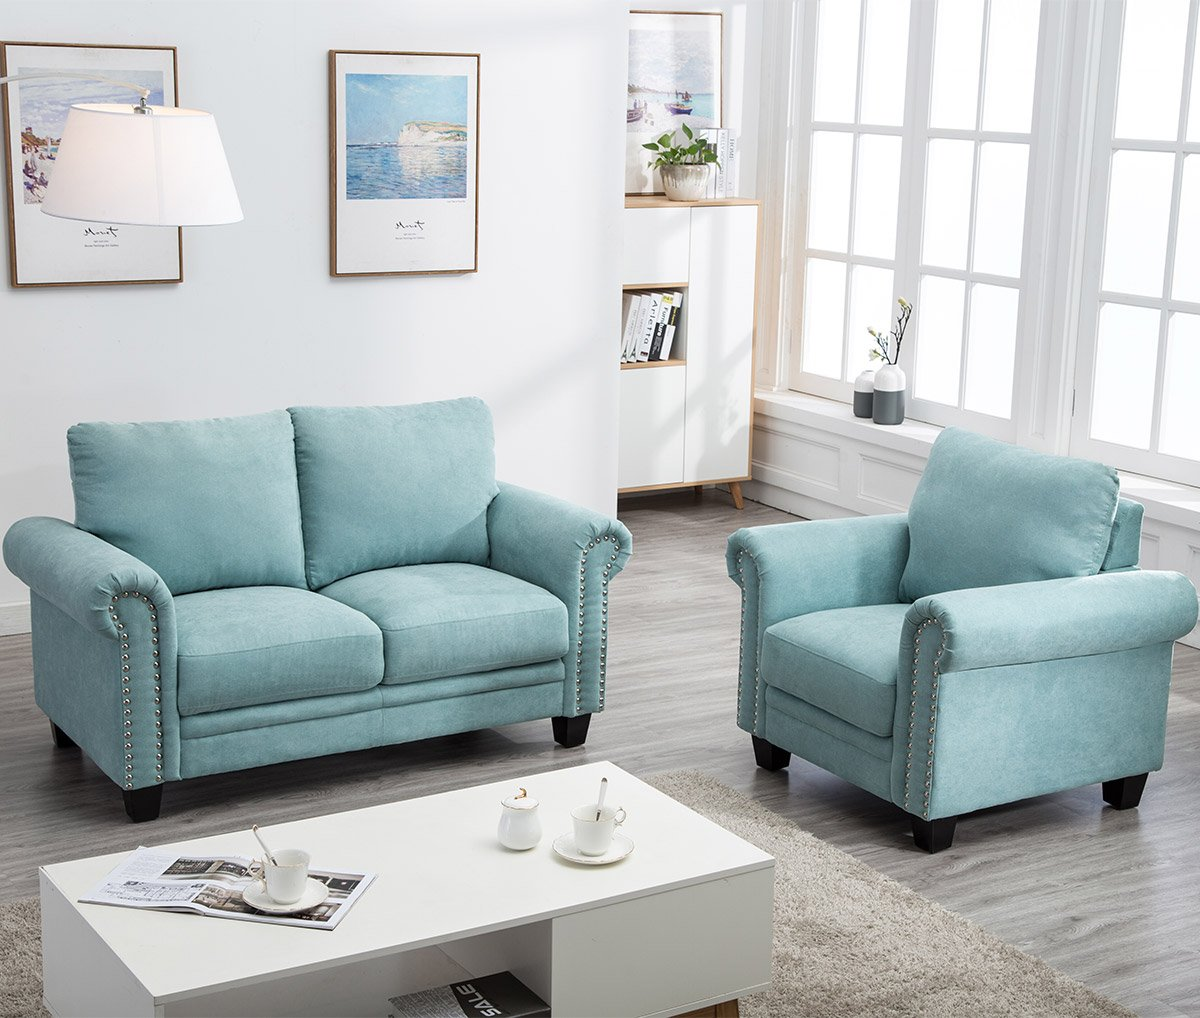 Amazon.com: Harper & Bright Designs Living Room Sofa Set ...